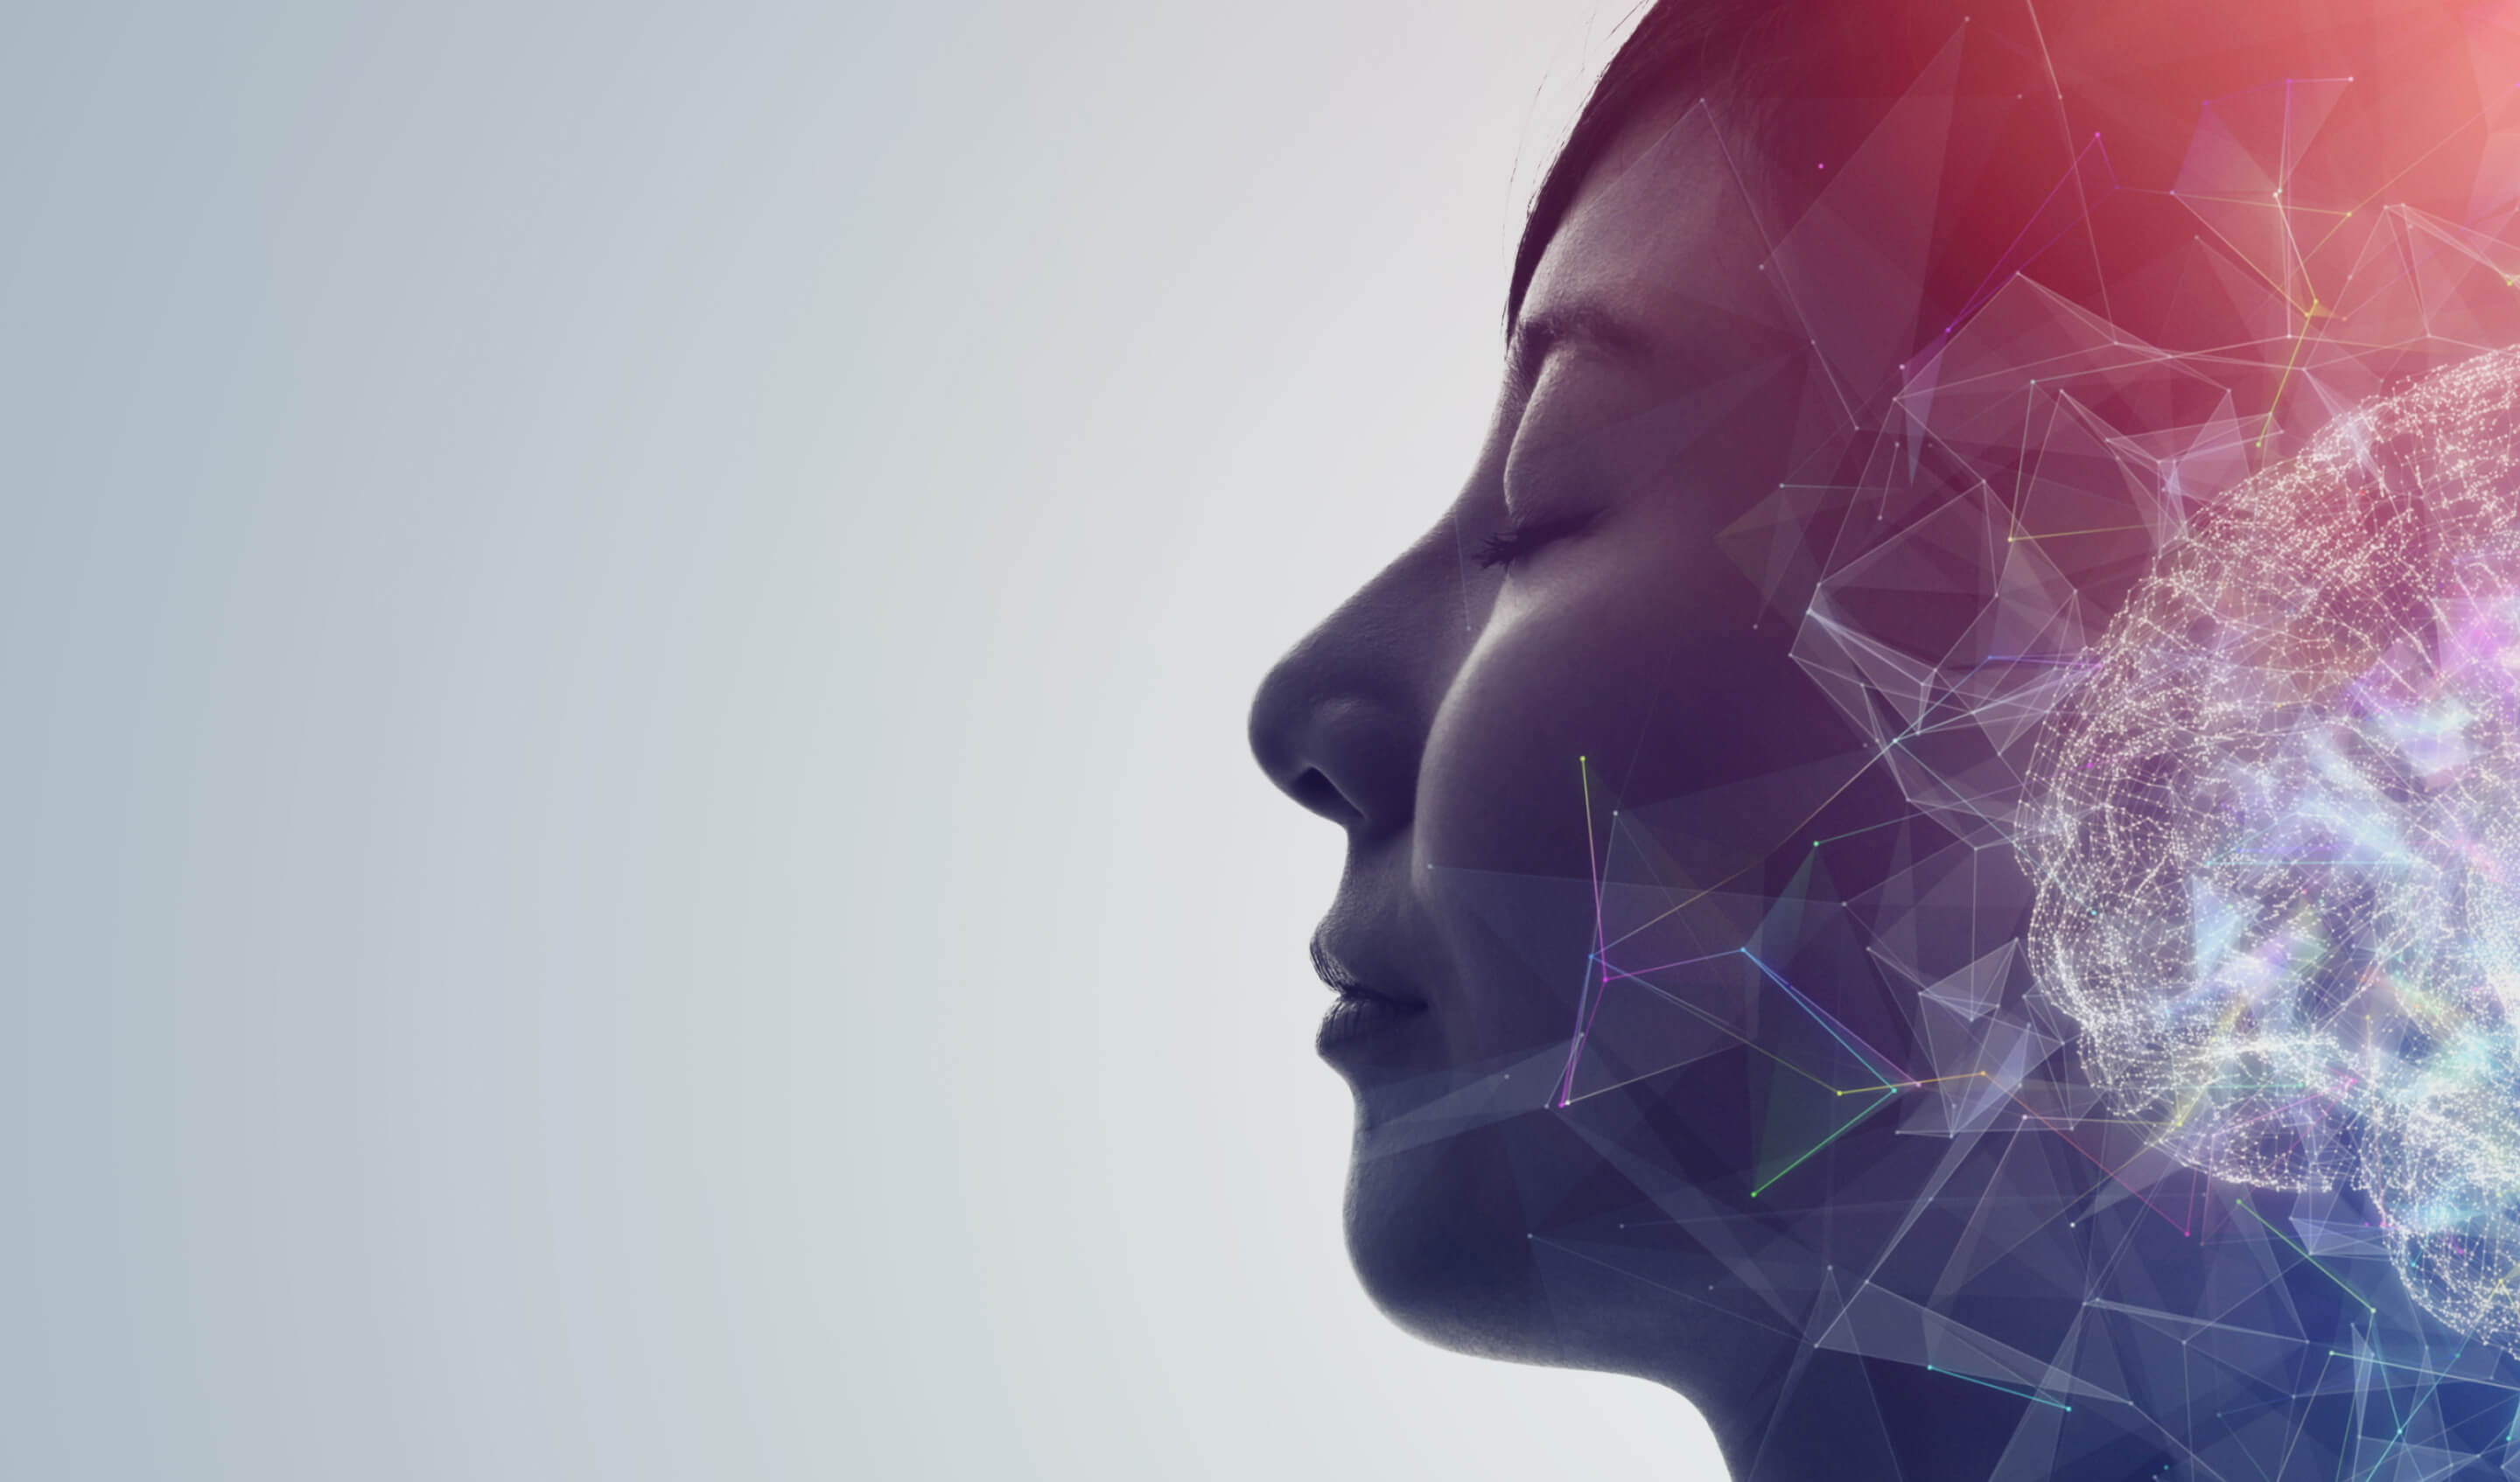 Abstract image of a woman's face overlaid with a gradient of color and neural network pathways